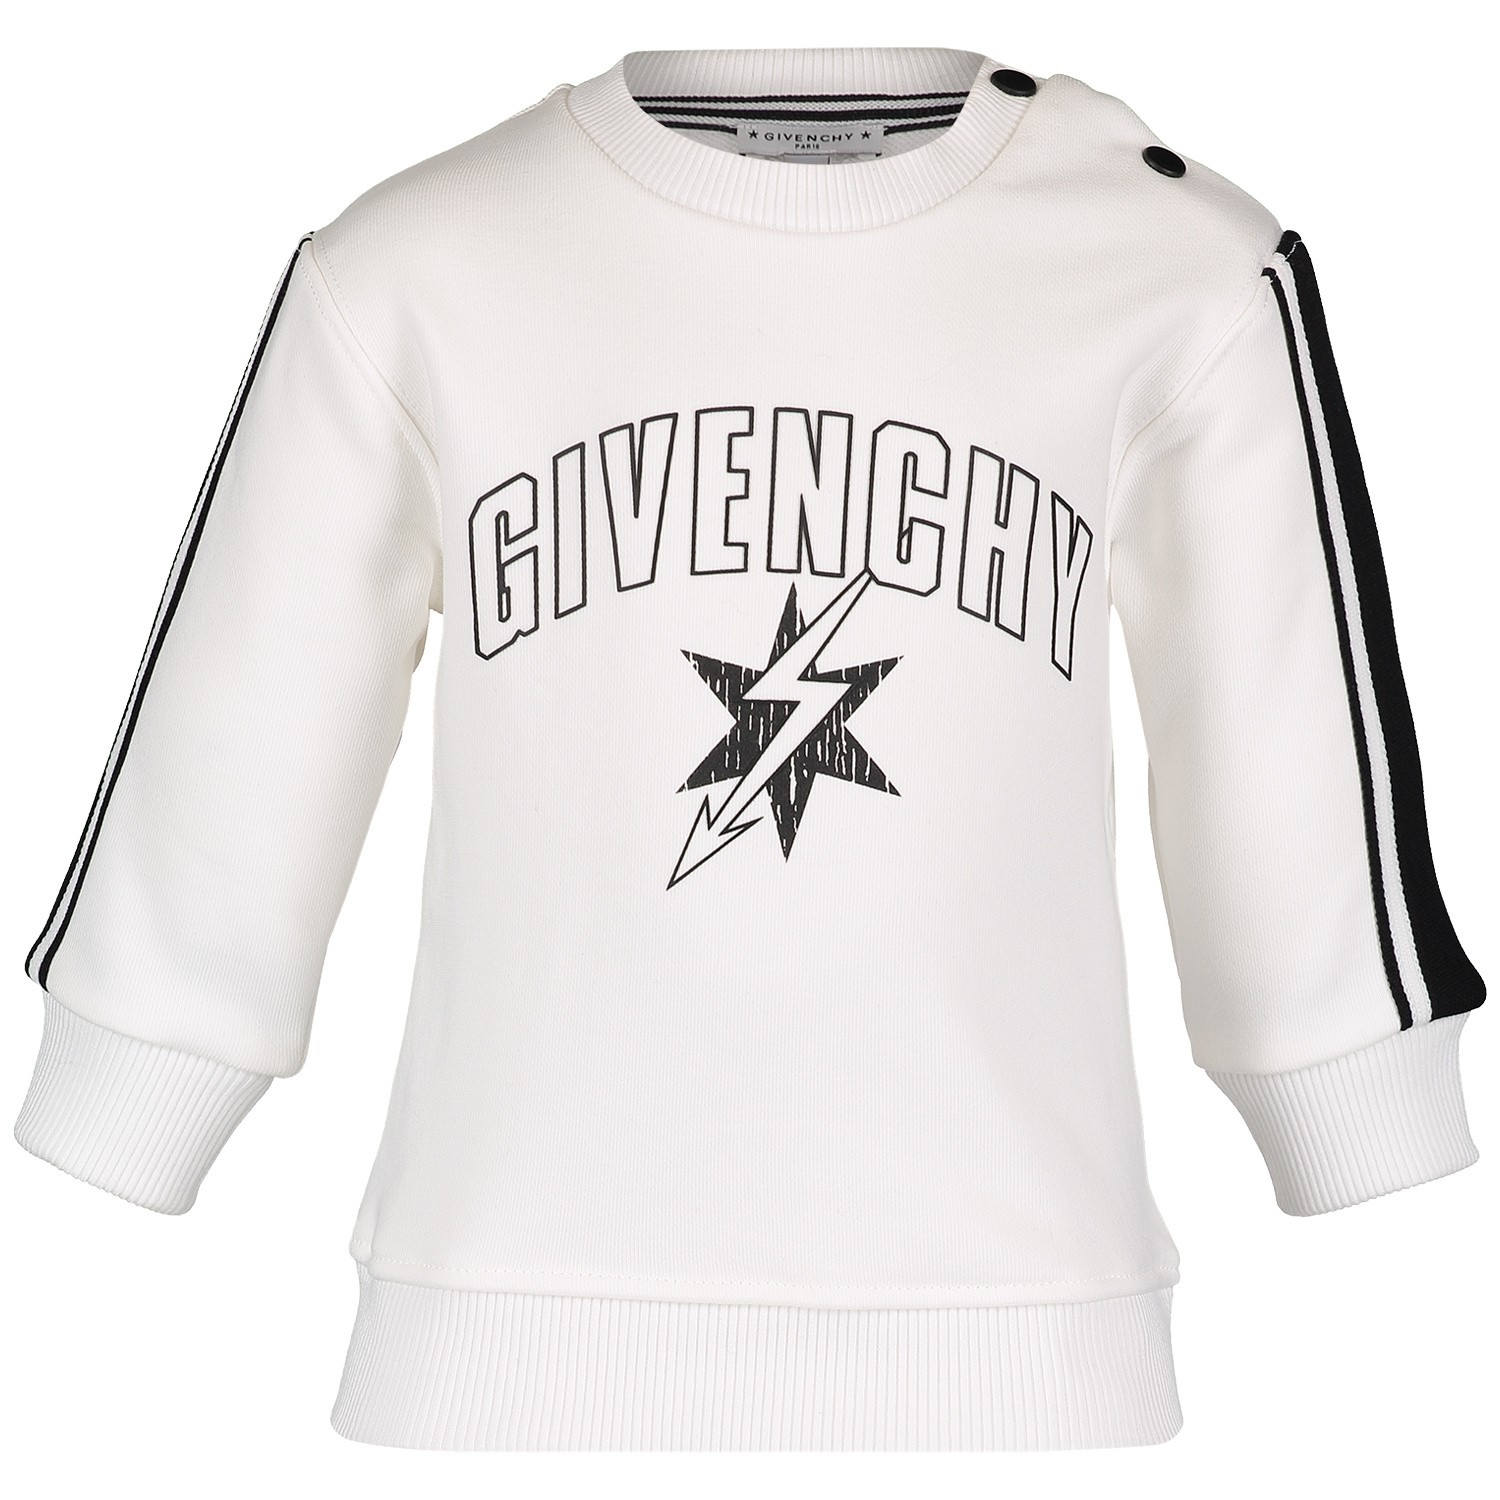 Afbeelding van Givenchy H05071 baby trui wit